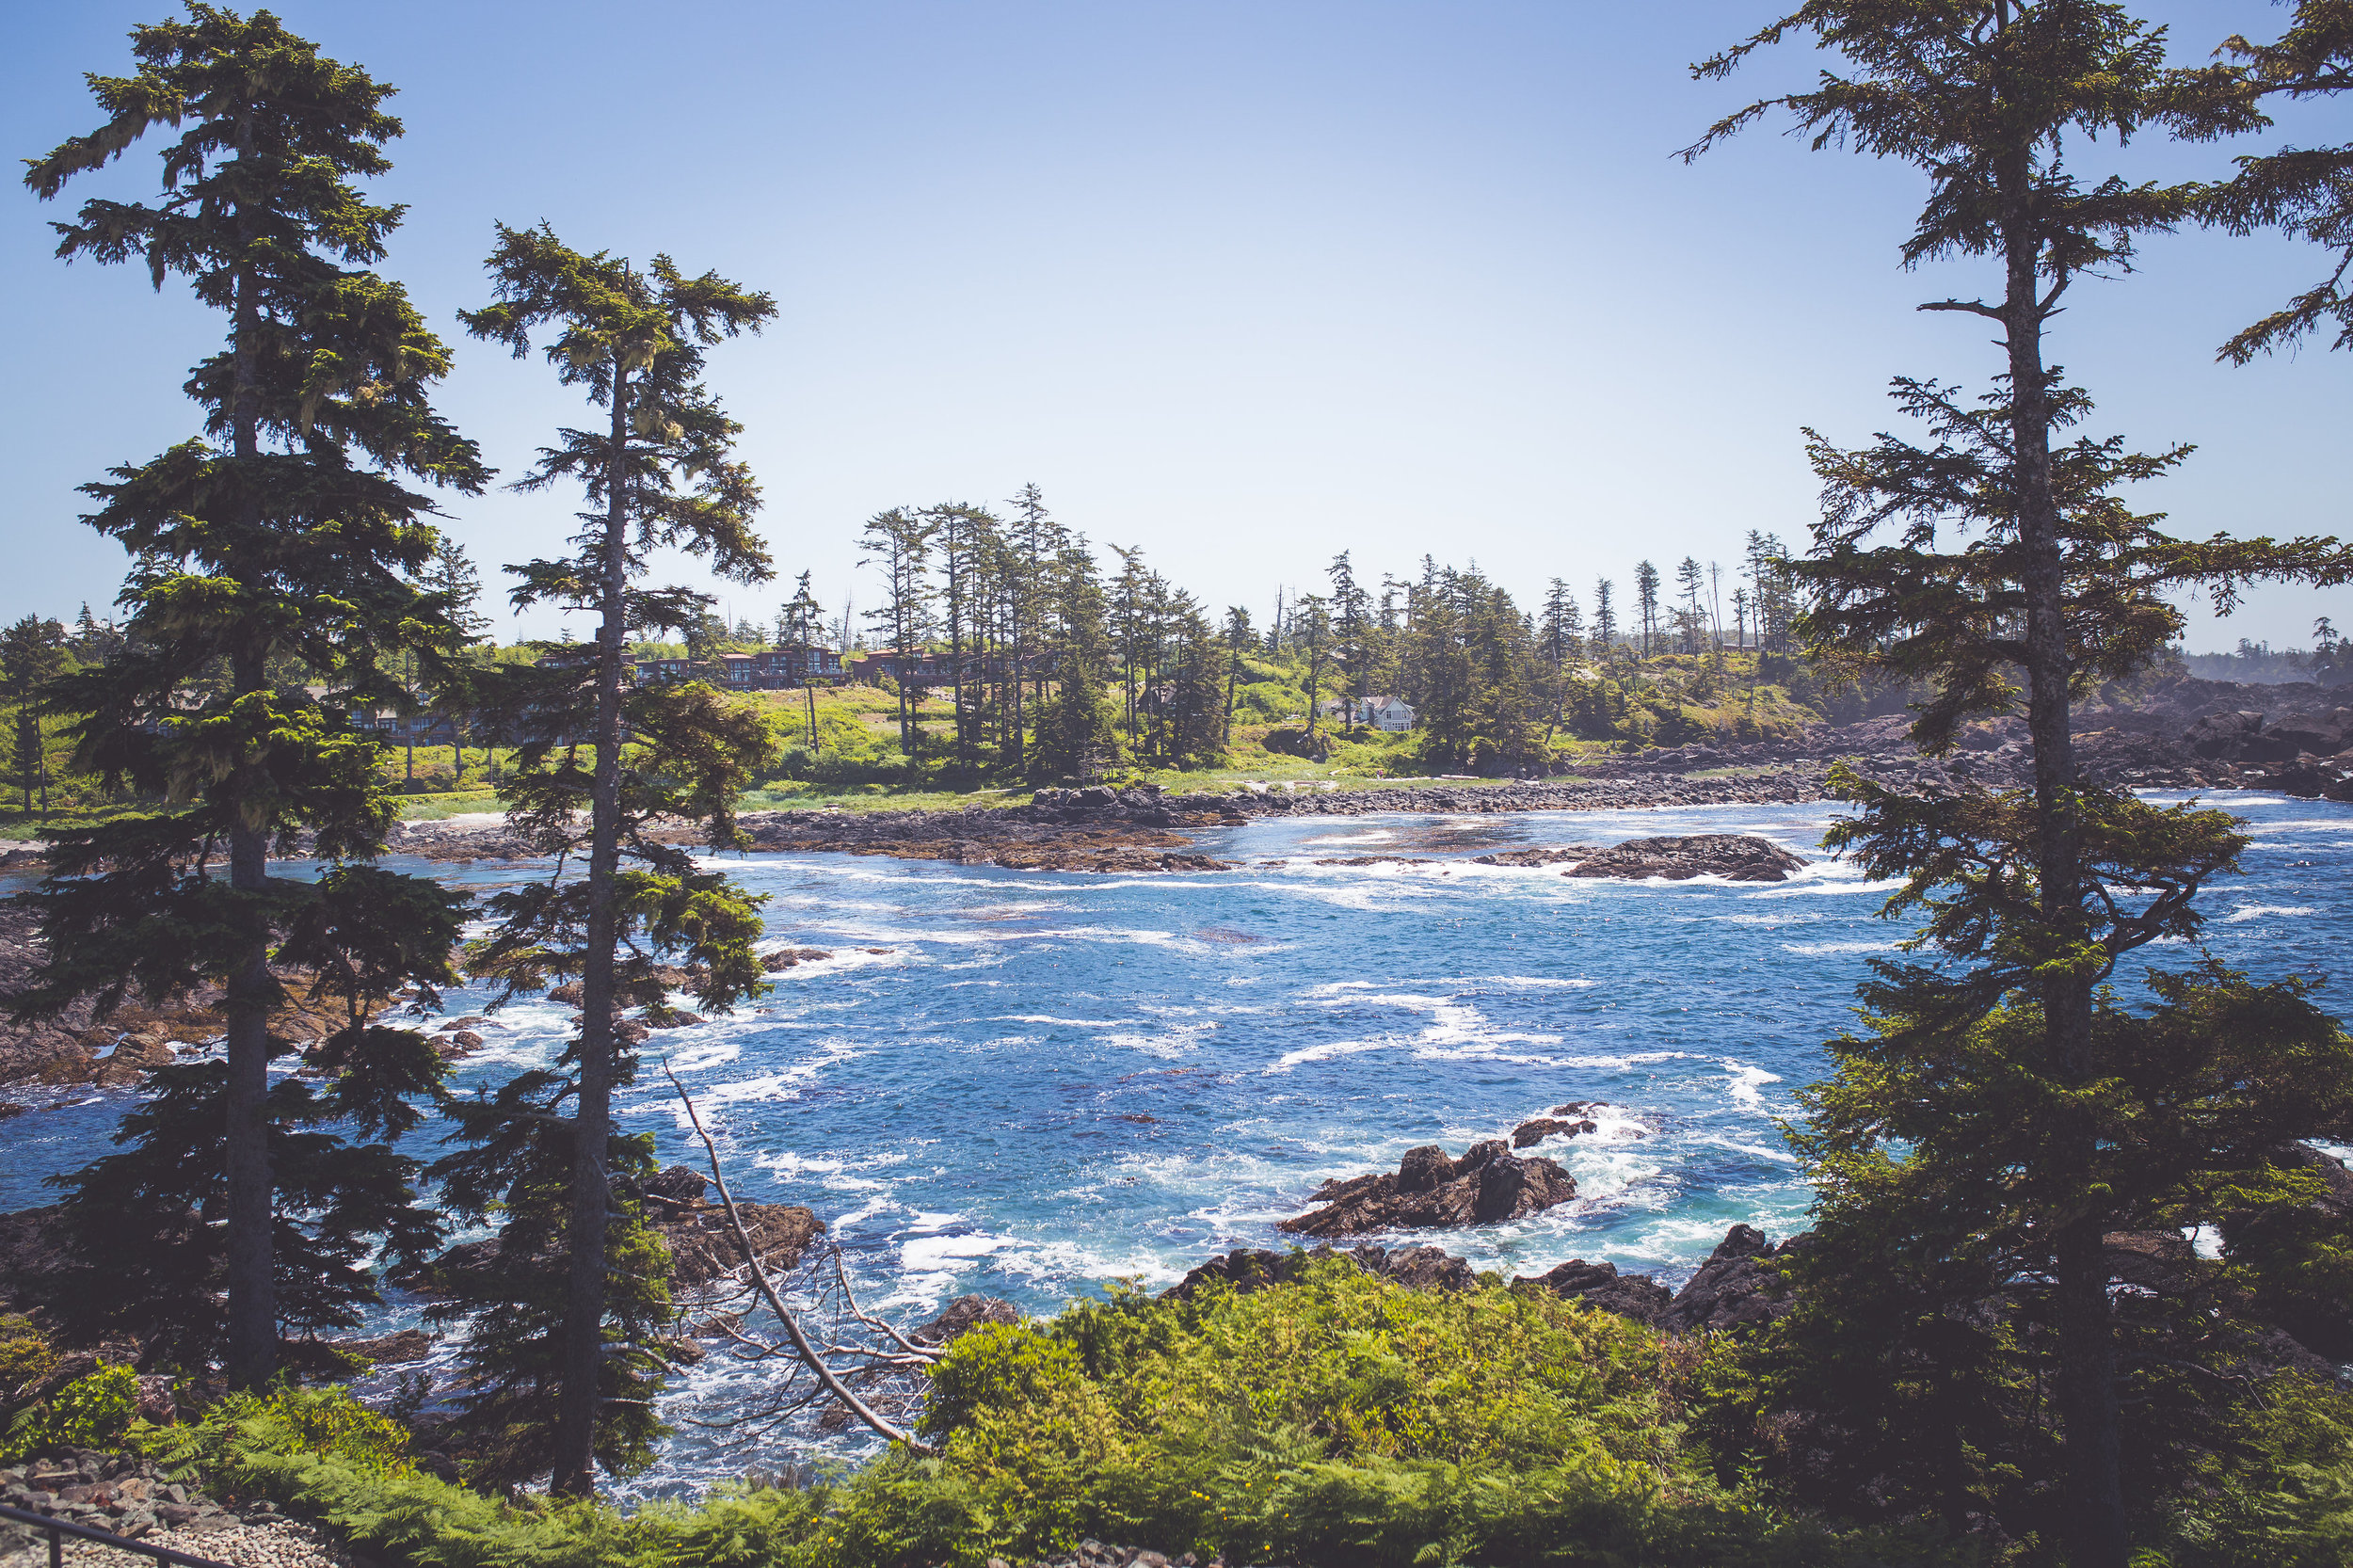 black-rock-oceanfront-resort-weddings-ucluelet-bc-courtney-jake-21.jpg